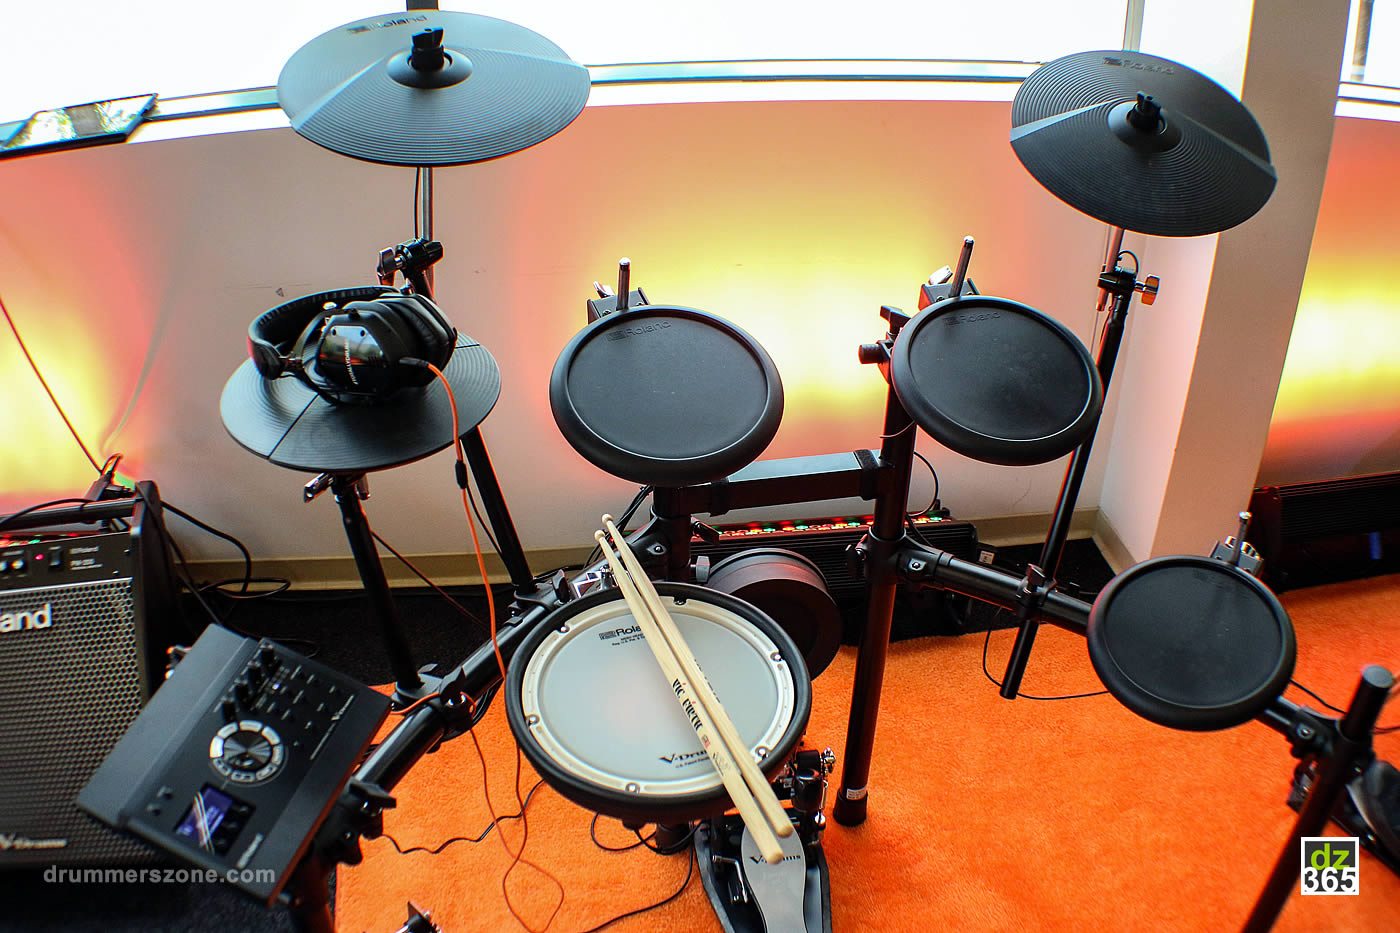 Roland TD-17 - TD-17K-L, the light, beginning TD-17 model